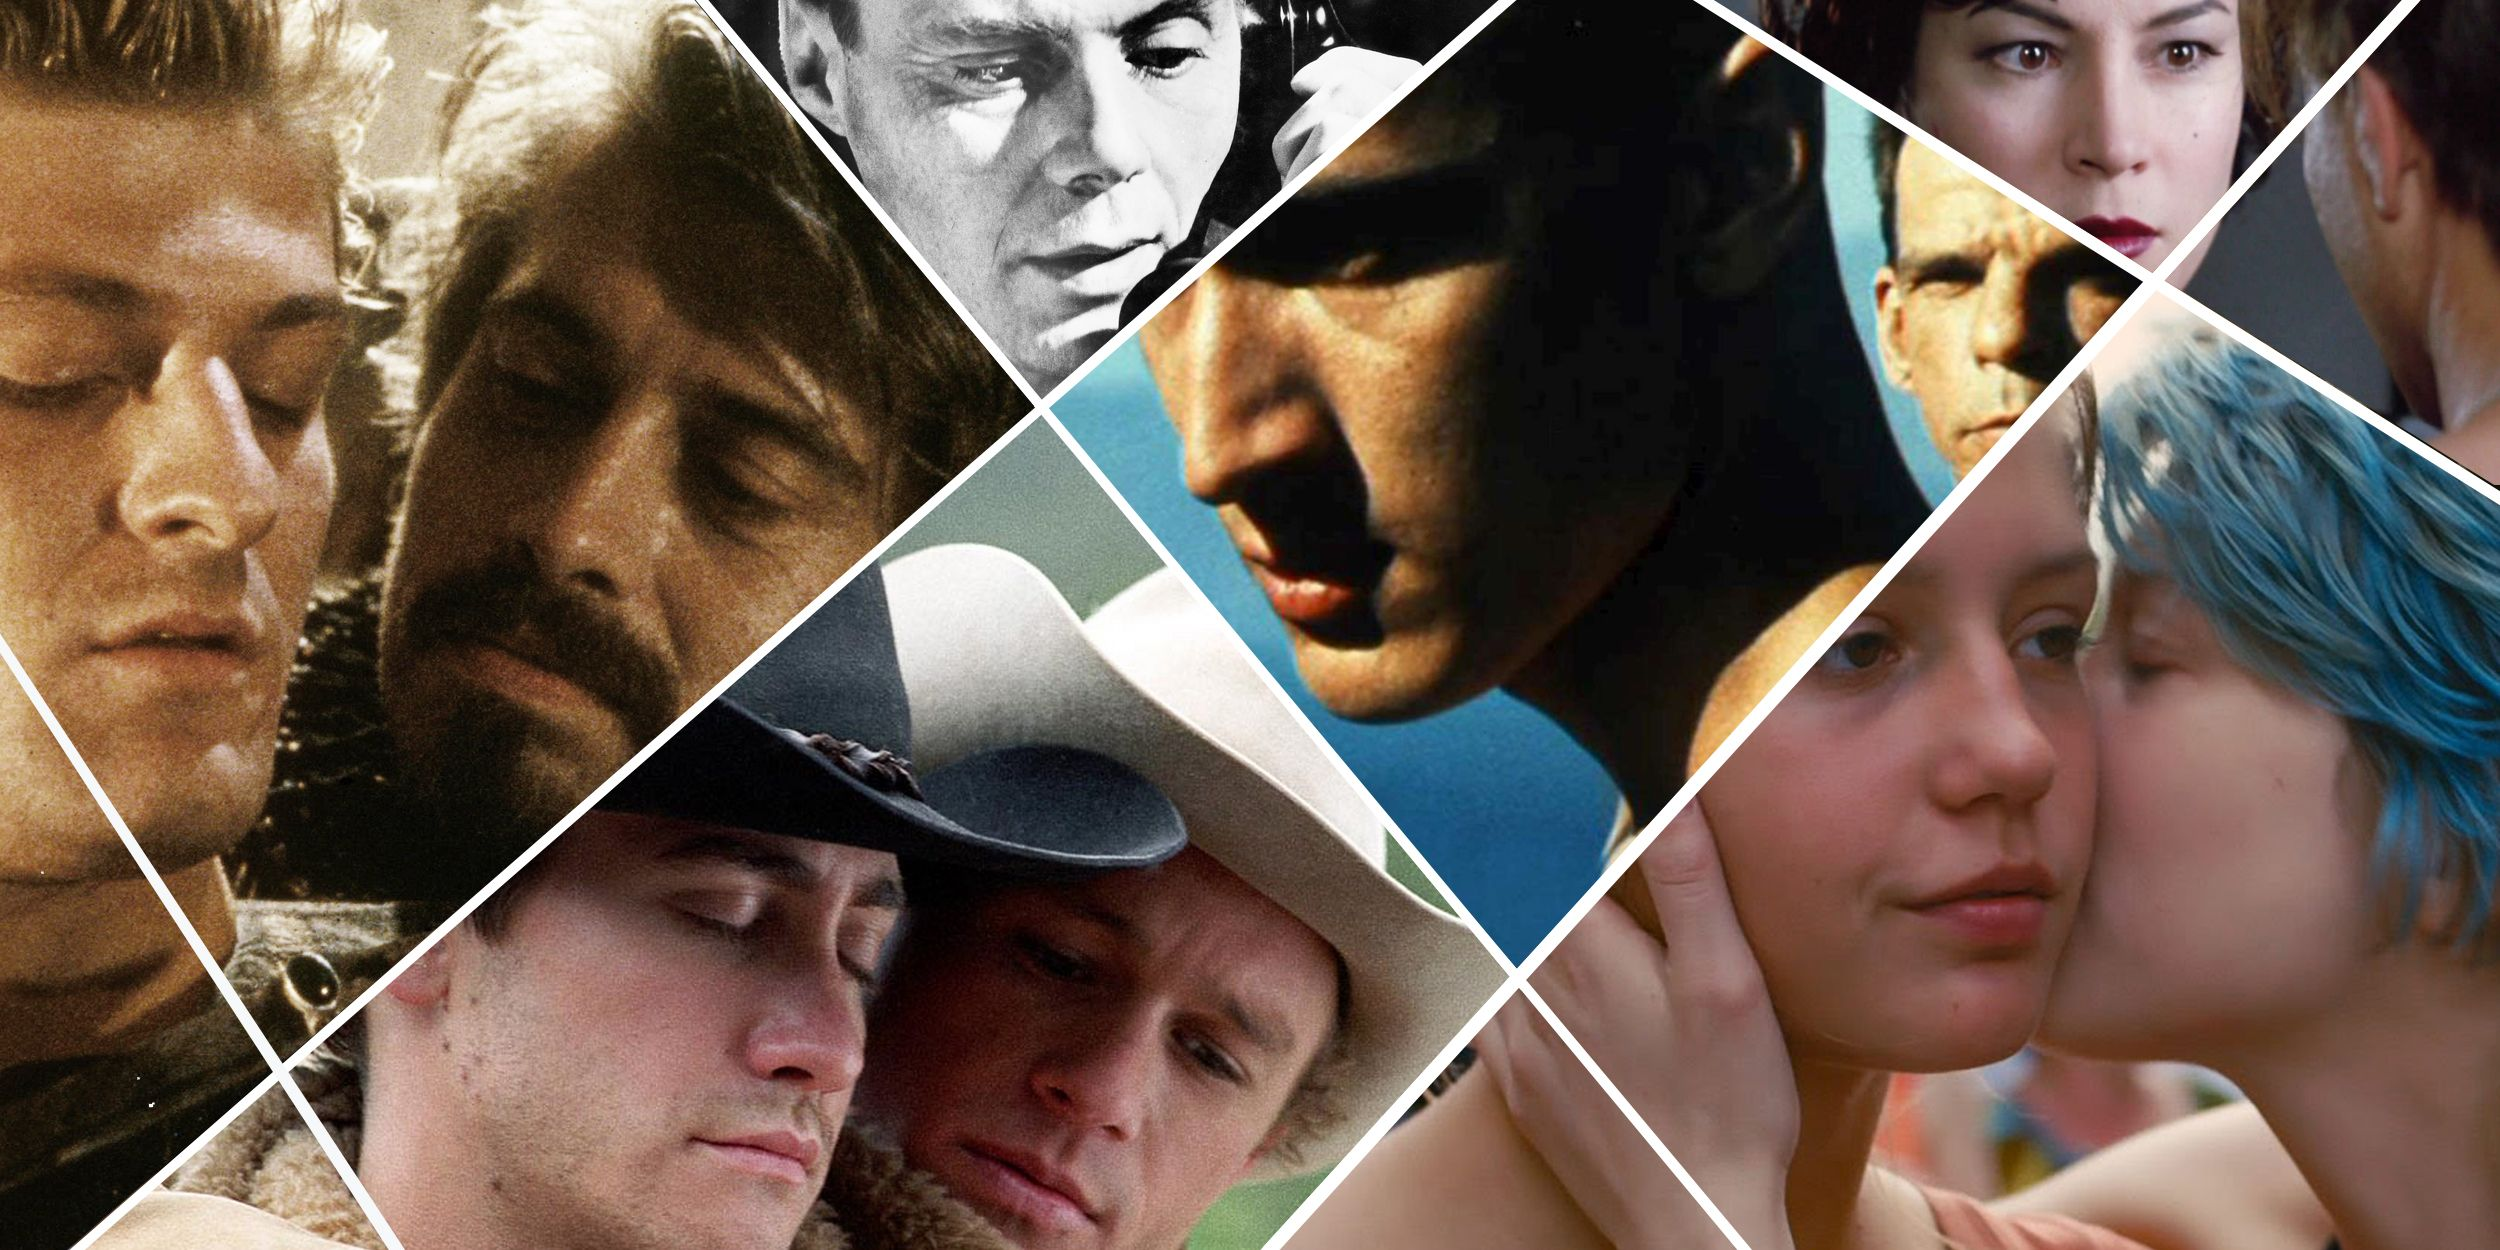 The 30 greatest LGBTQ films ever, ranked